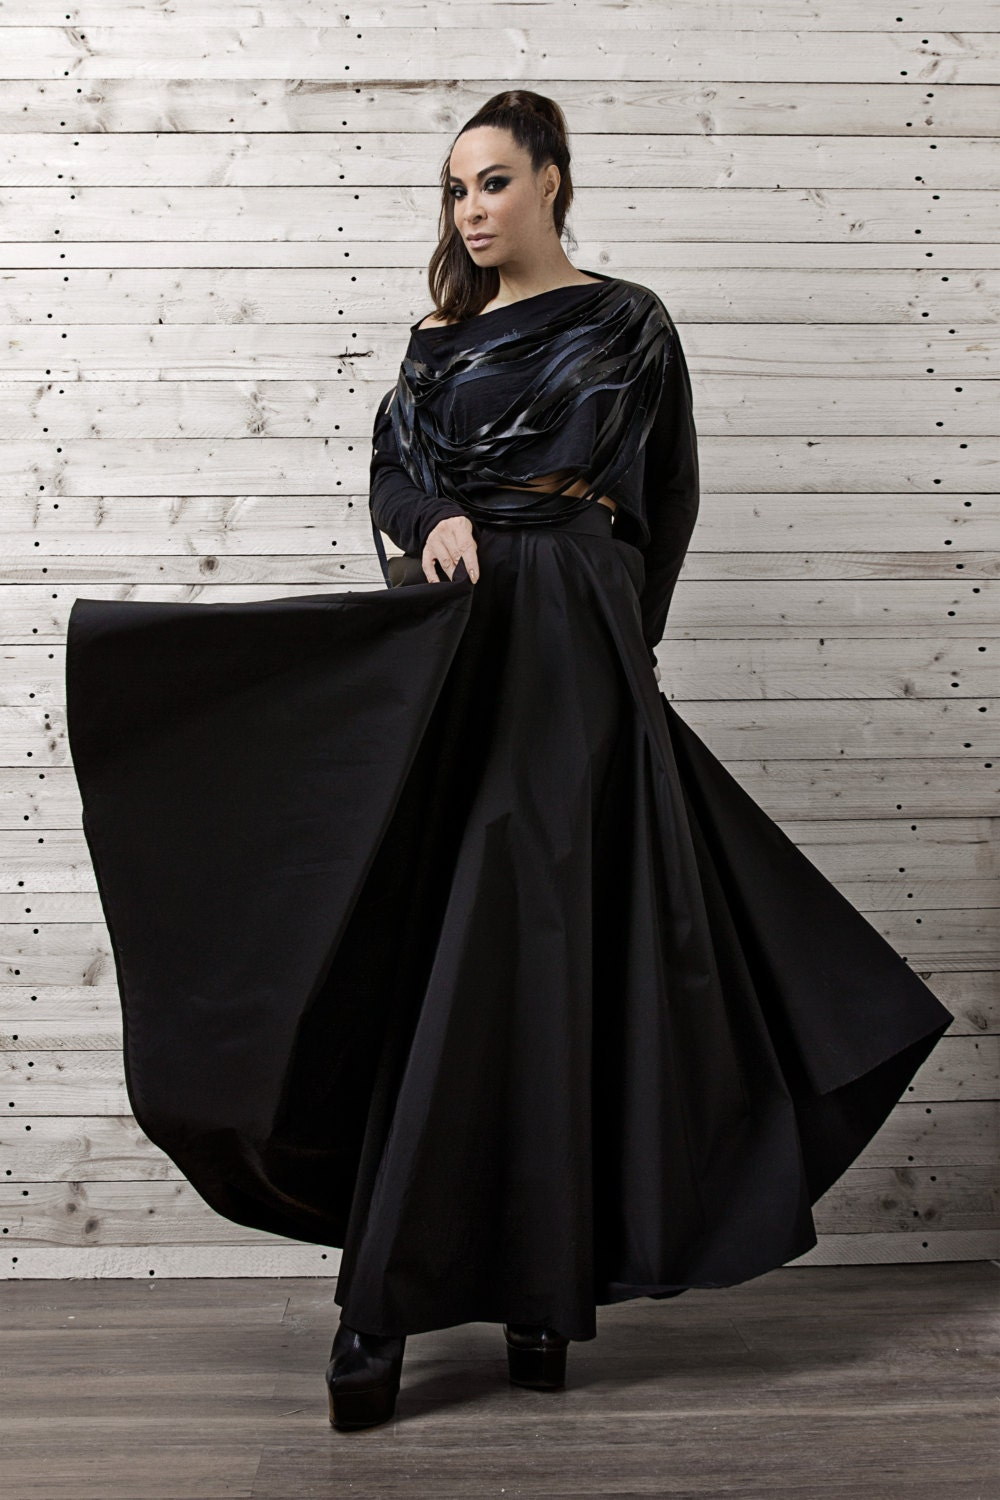 These long skirts are flattering on every body type; these skirts can be worn with everything from sweaters to tee shirts to cardigans. Chiffon-style maxi skirts are billowy and romantic while remaining simple enough to be worn during the day.